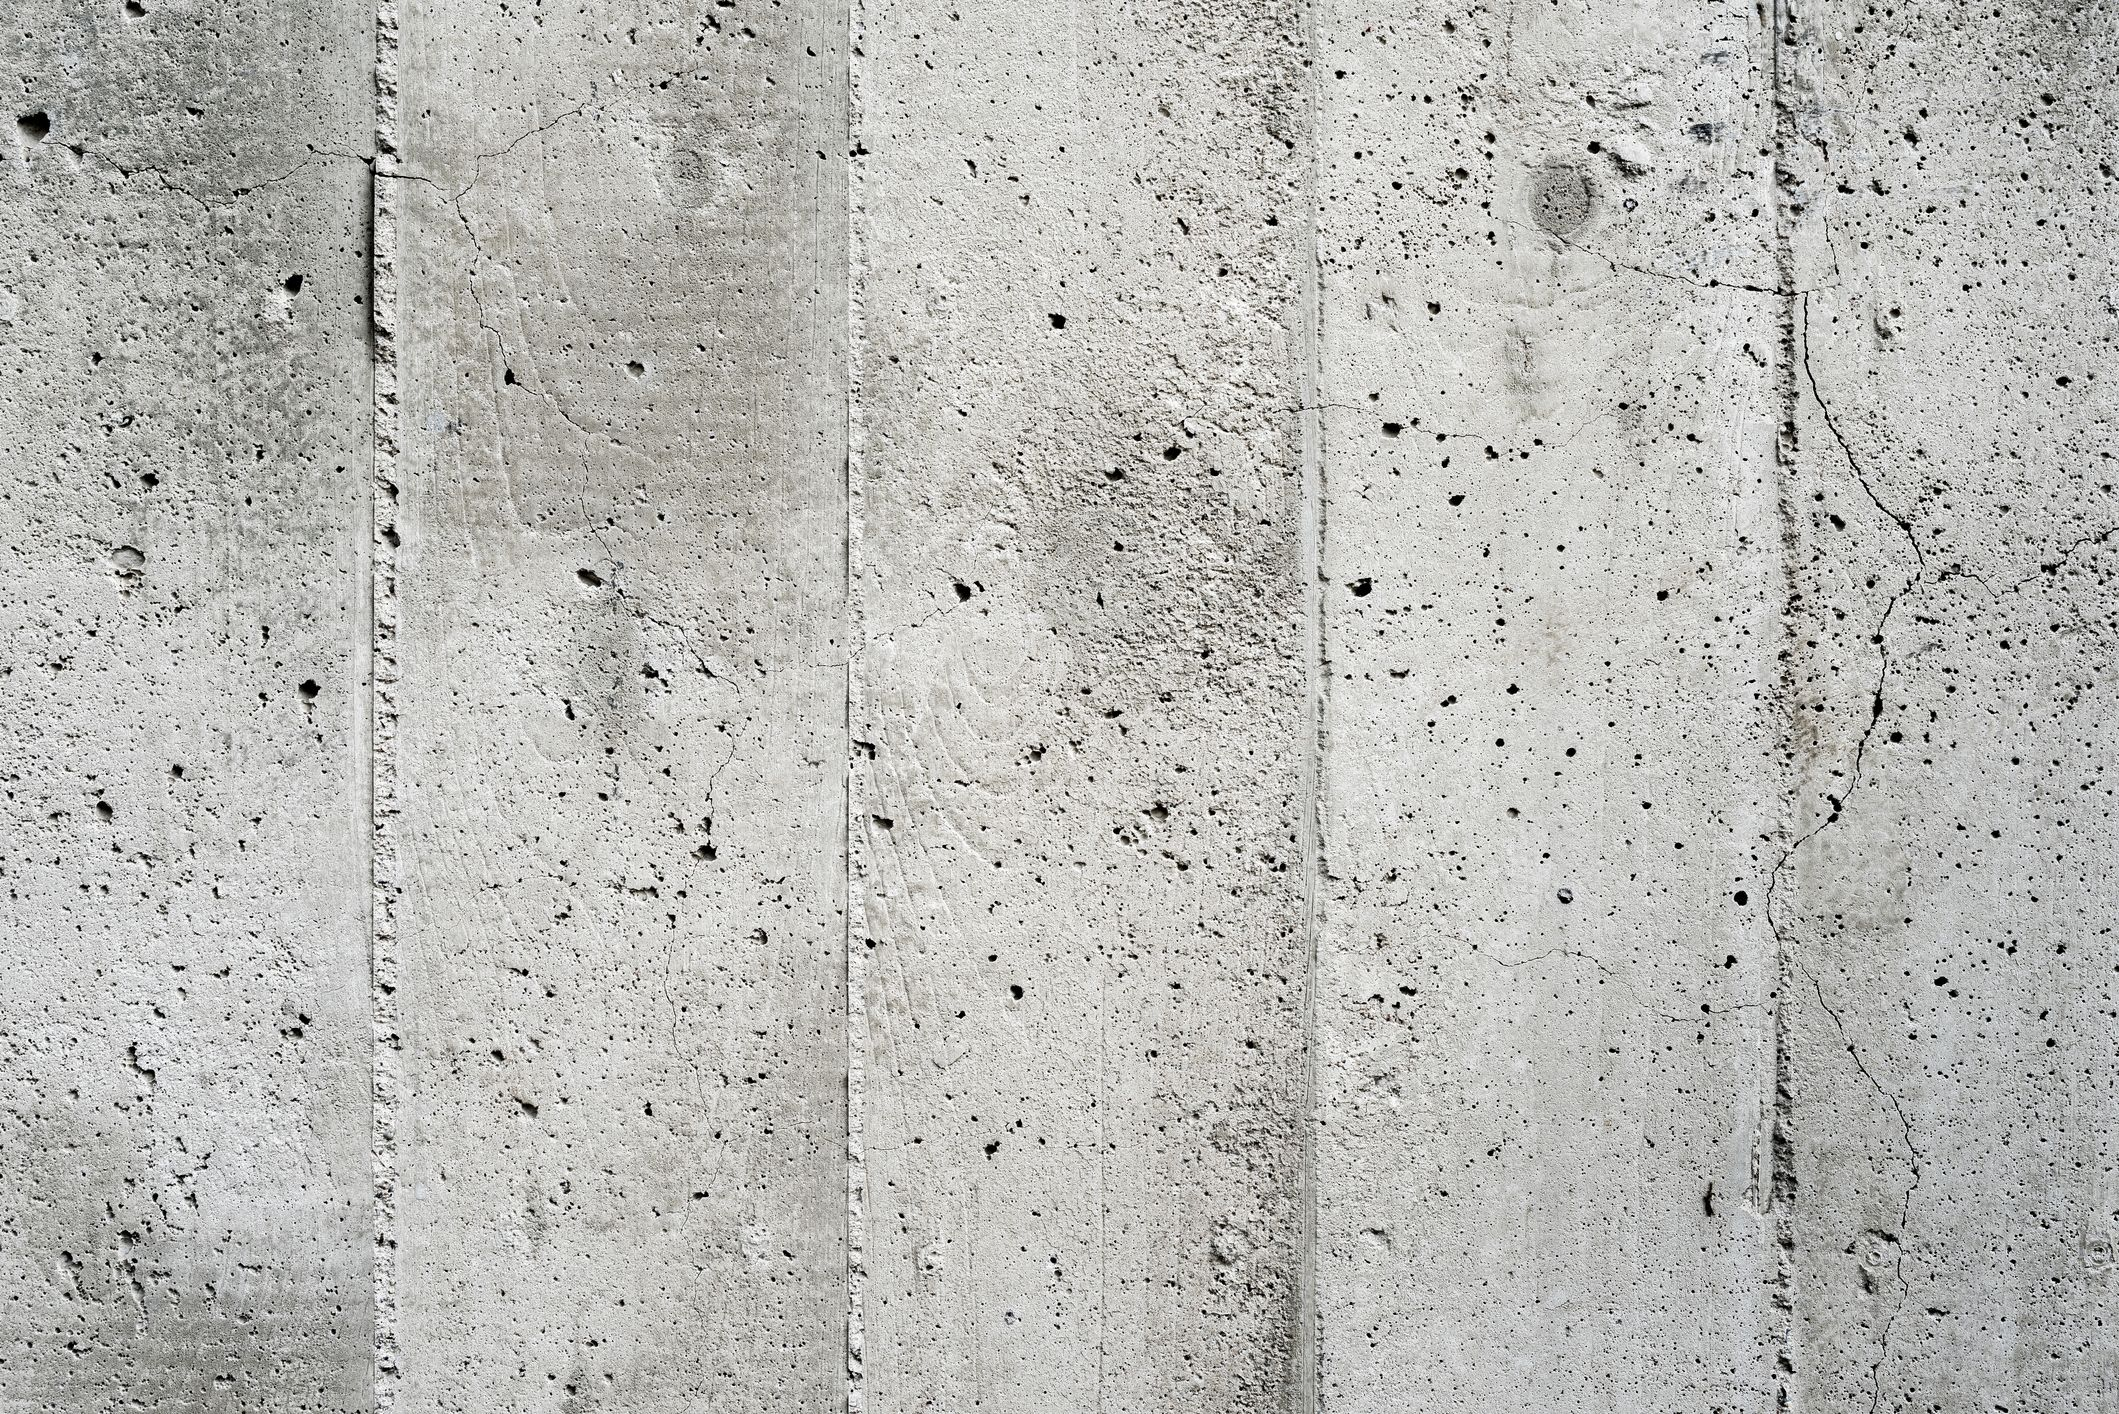 New Kind of Concrete Cracks Much Less Than the Regular Stuff